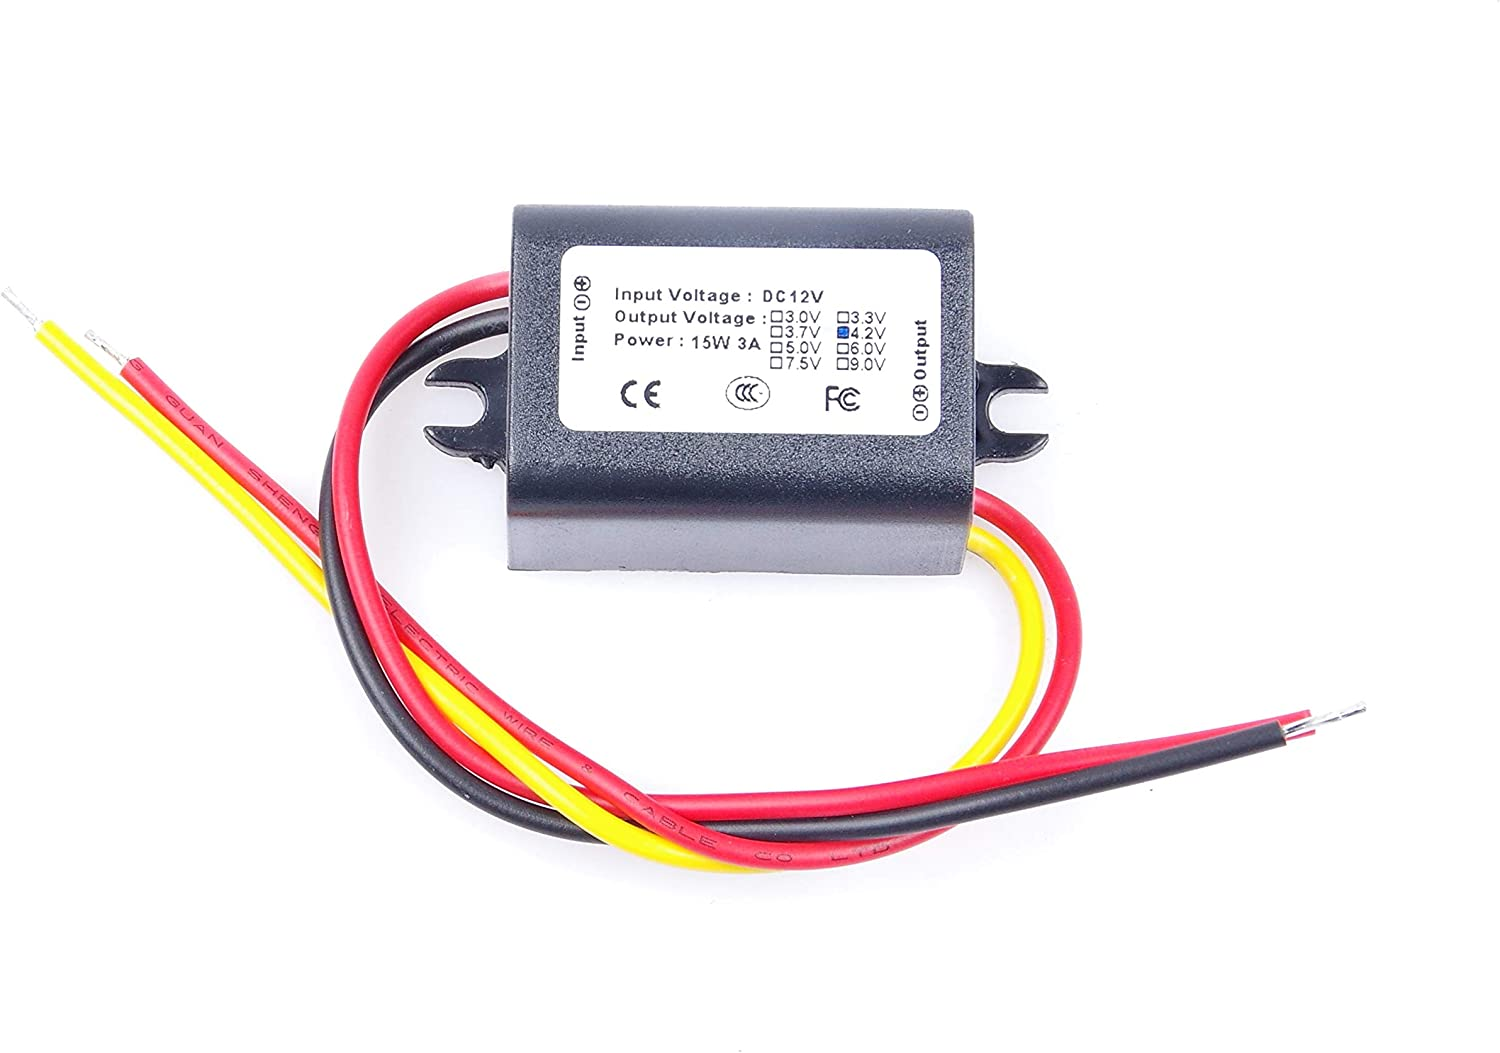 KNACRO DC-DC Convert 12V 7.2V- 24V to 4.2V 3A 12.6W Step-Down Power Supply Module Power Converter Module Synchronous Buck with Reverse Connection Protection